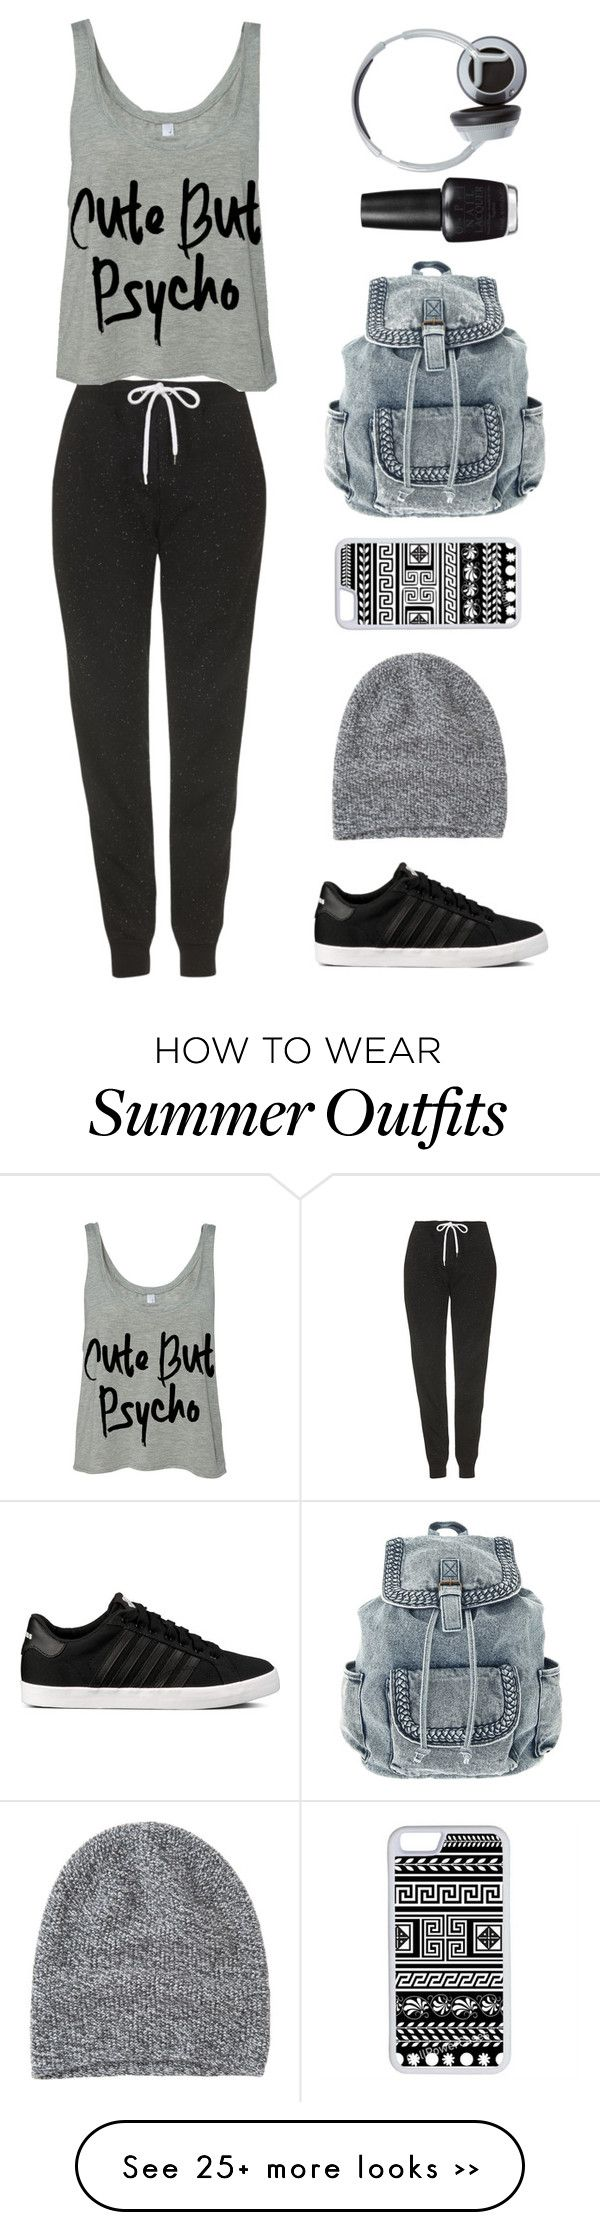 """""""Cute but psycho"""" by sasha06527 on Polyvore featuring Topshop, Toast, CellPowerCases, OPI and Nixon"""